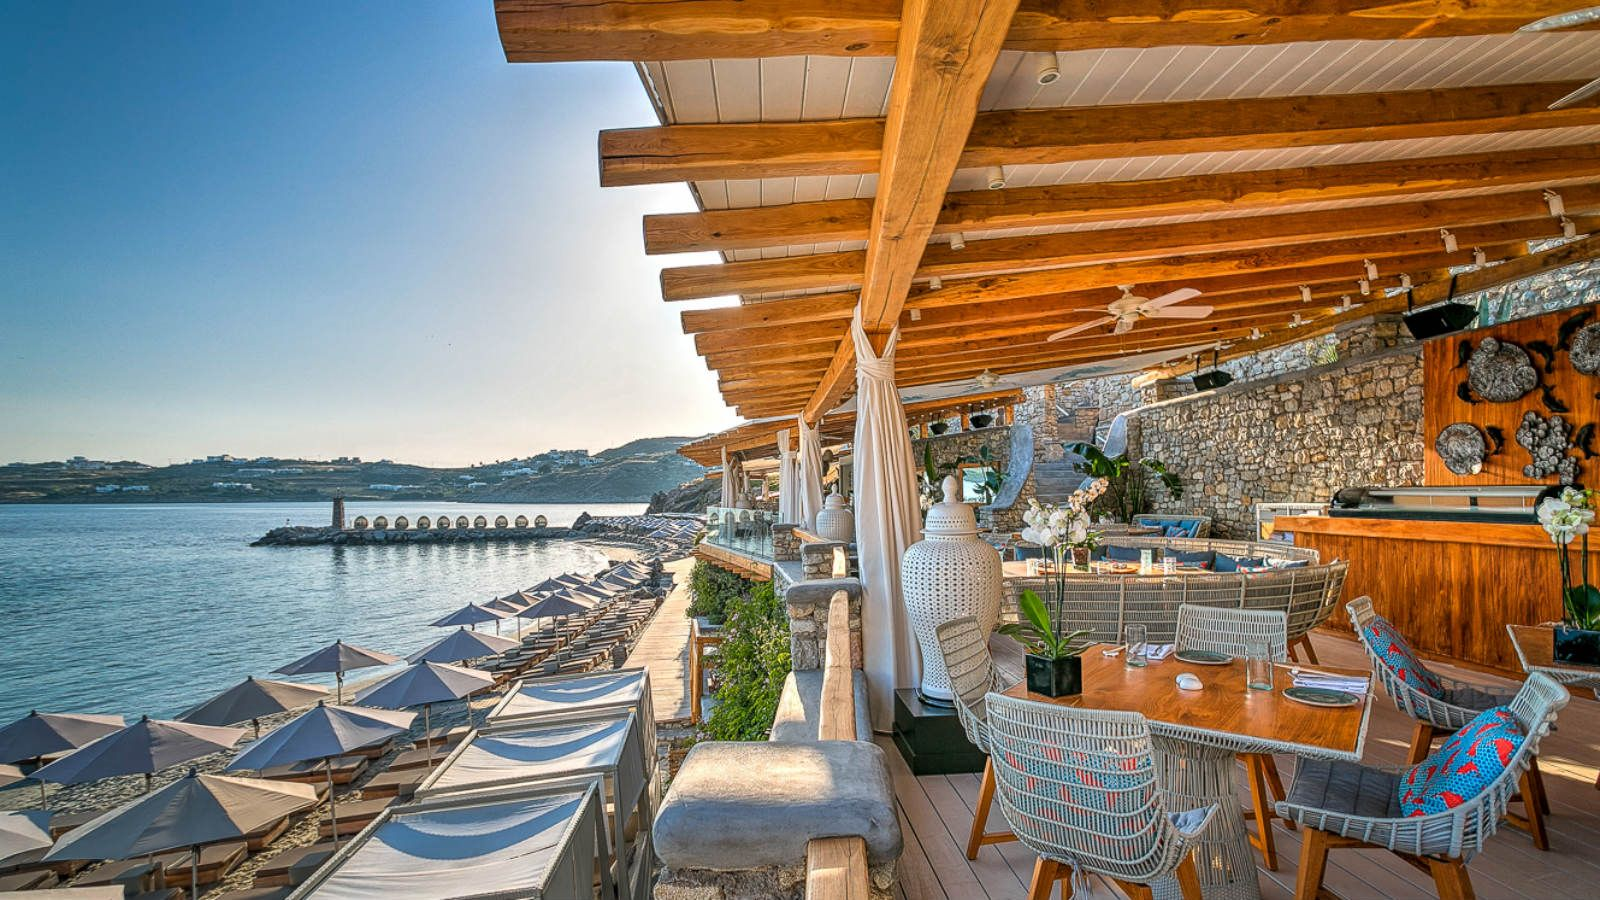 Buddha Beach Restaurant and Bar Mykonos -Santa Marina Luxury Hotel Greece